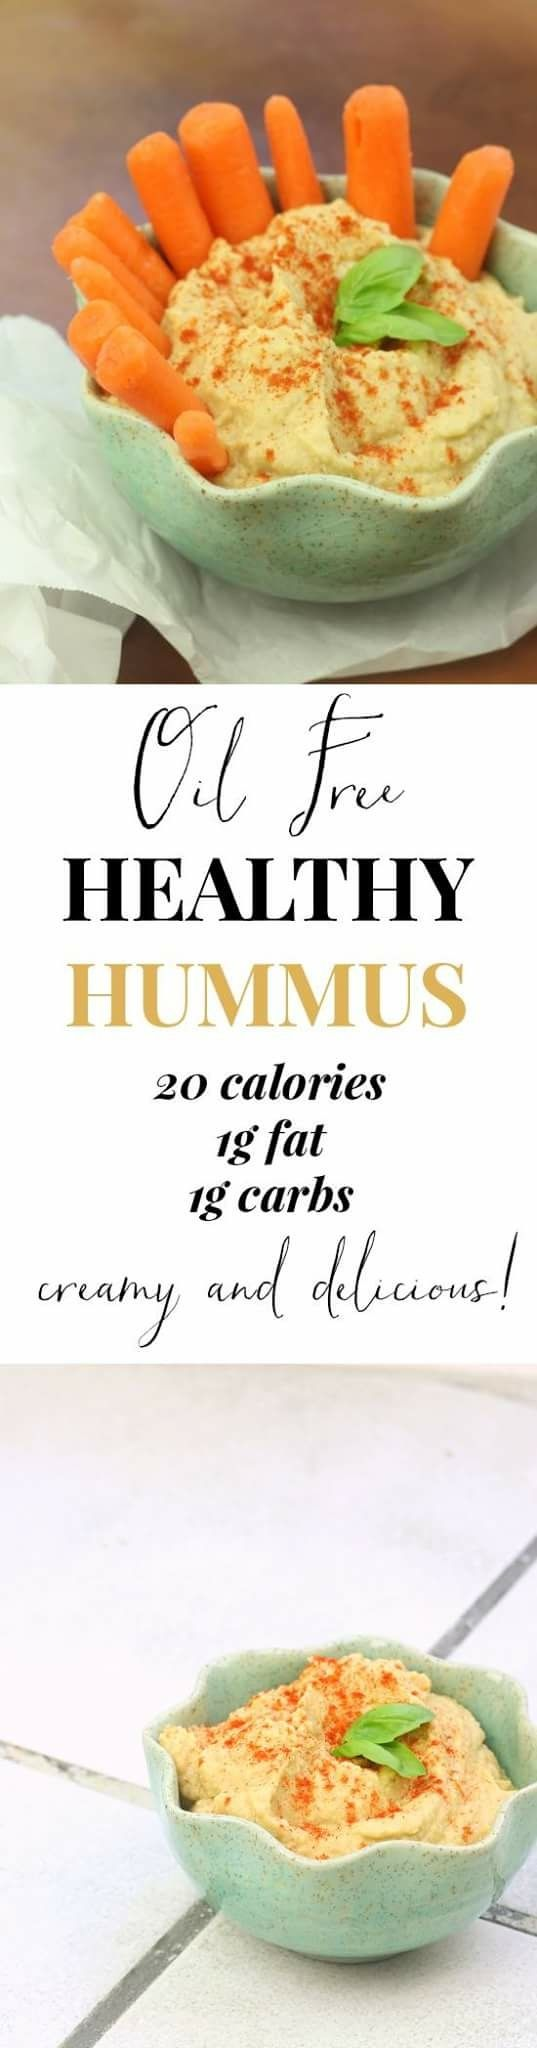 Things are happening! Let's eat some hummus and talk about it. First off, this hummus is perfection. I know because I had 9 fabulous taste testers who said so. (NINE. And there are 19 chefs total i…